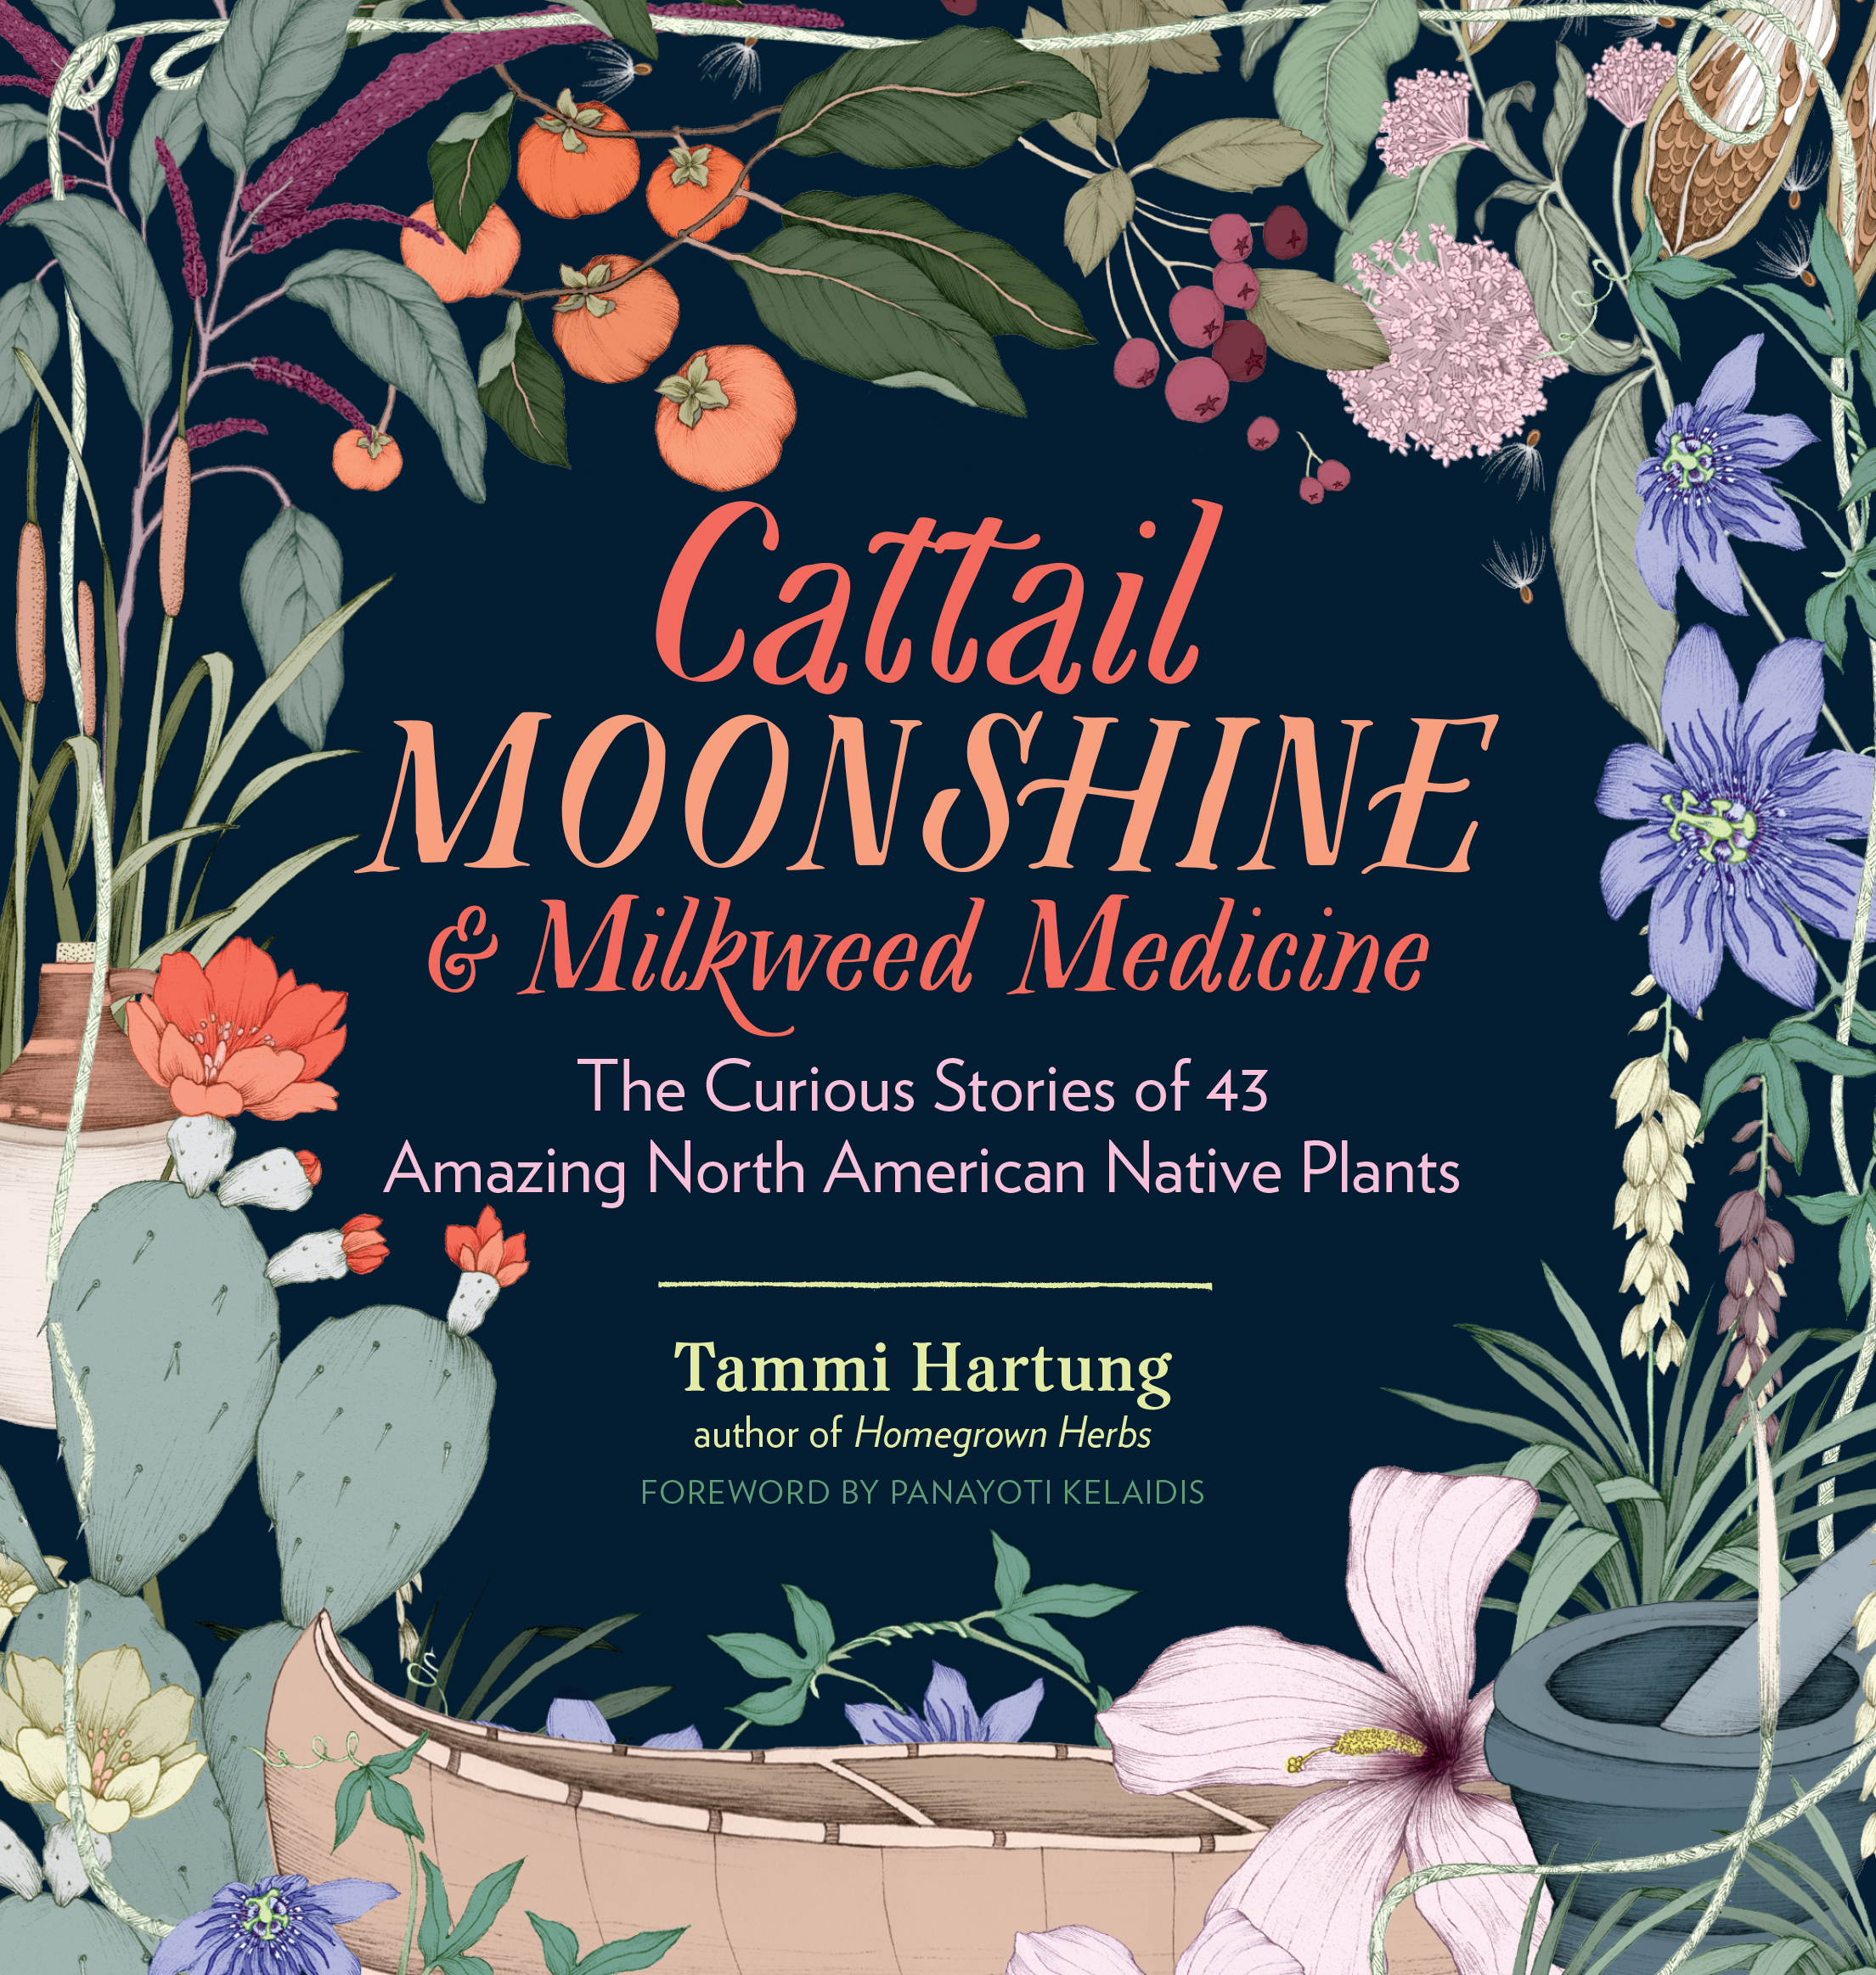 Cattail Moonshine & Milkweed Medicine The Curious Stories of 43 Amazing North American Native Plants - Tammi Hartung